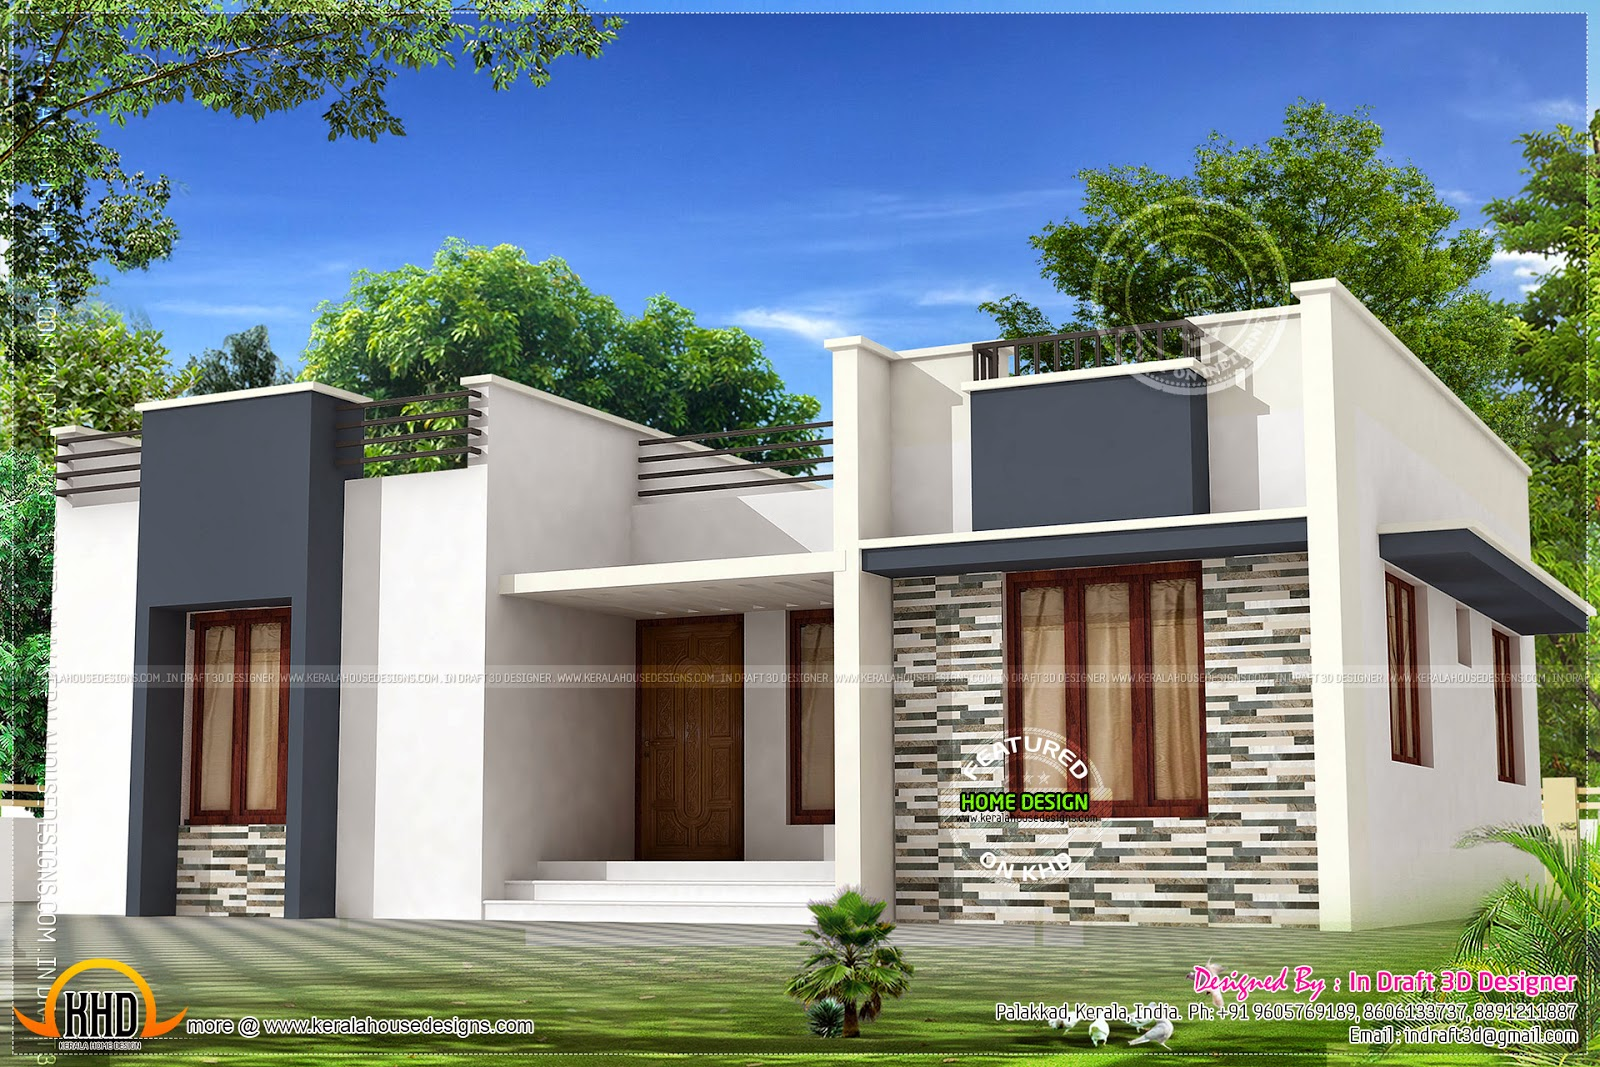 3 bed room budget home design 971 kerala home for Looking for house plans